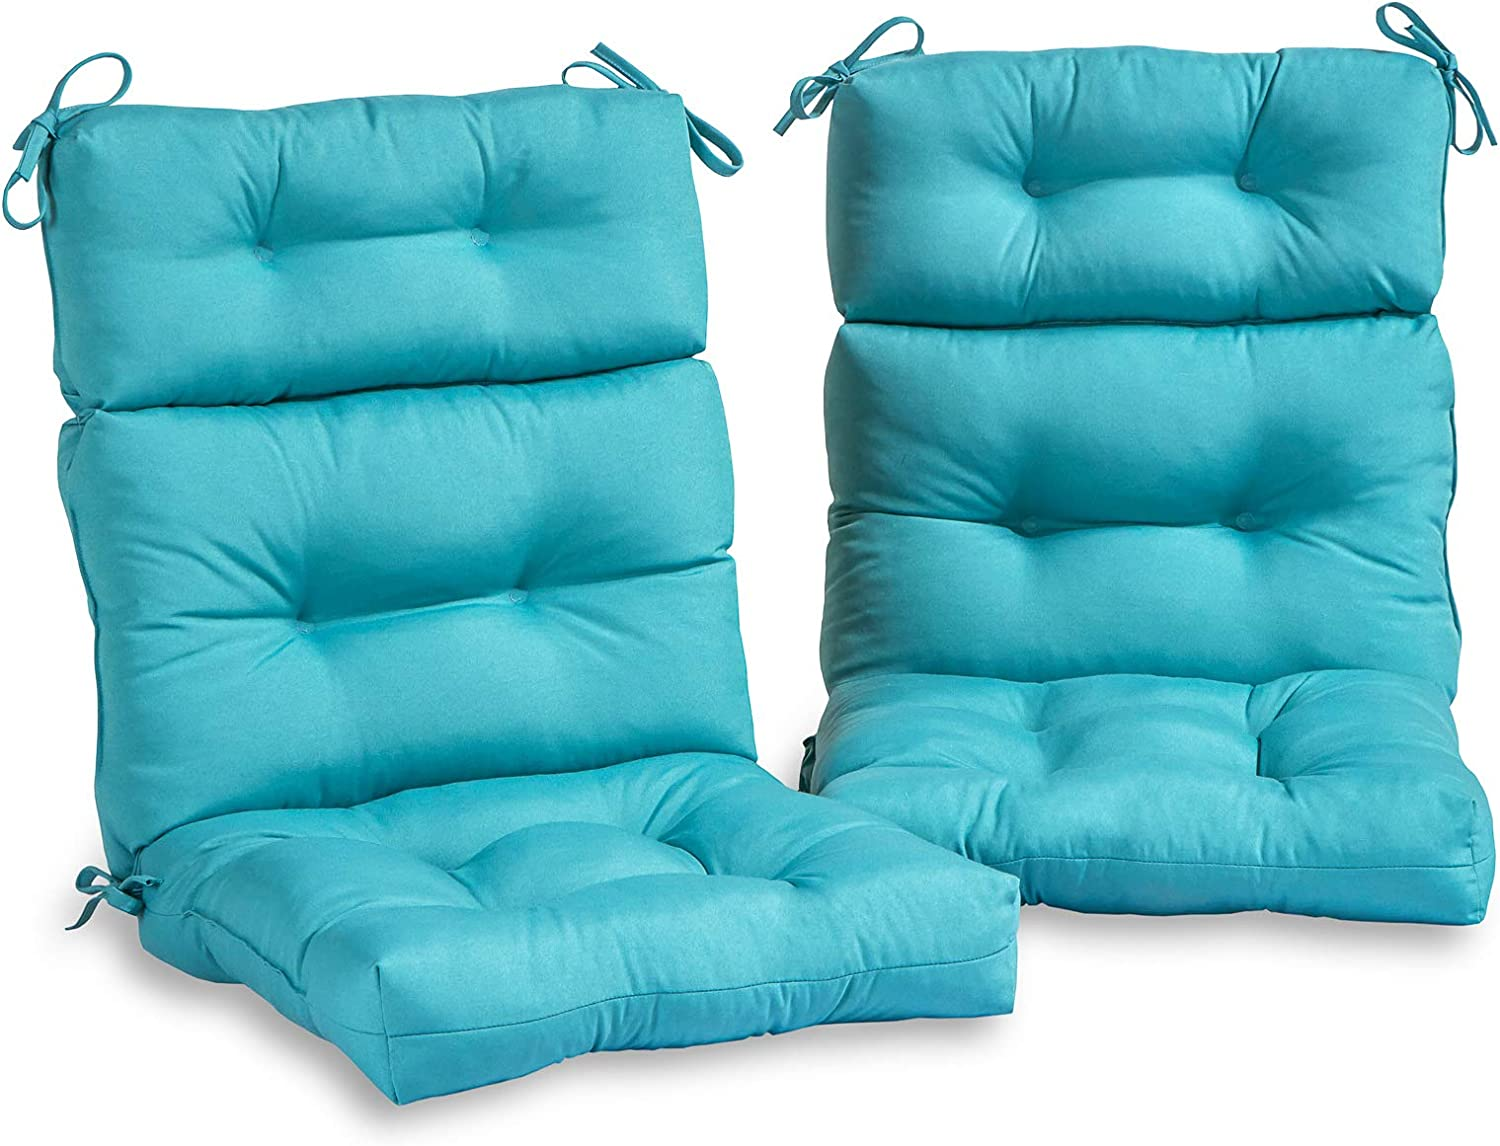 South Pine Porch AM6809S2-TEAL Solid Teal Outdoor High Back Chair Cushion, Set of 2